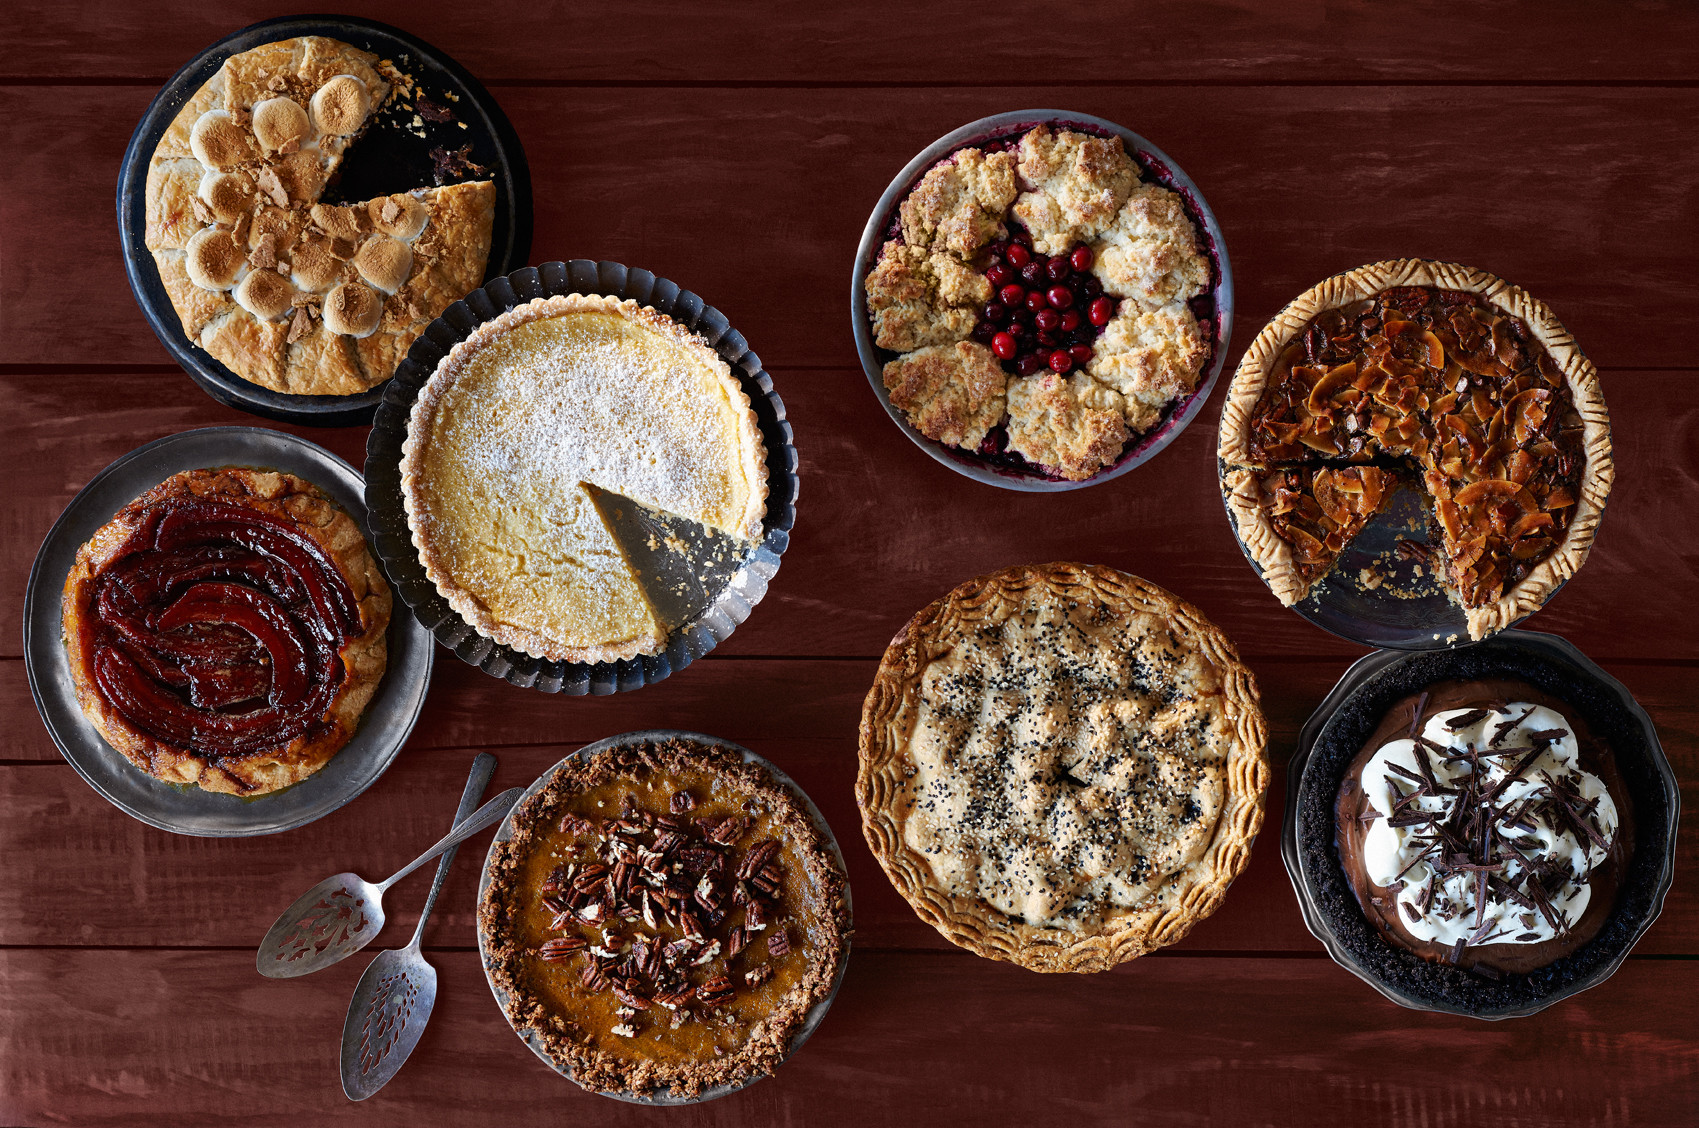 Pie Recipes For Thanksgiving  38 Best Thanksgiving Pies Recipes and Ideas for